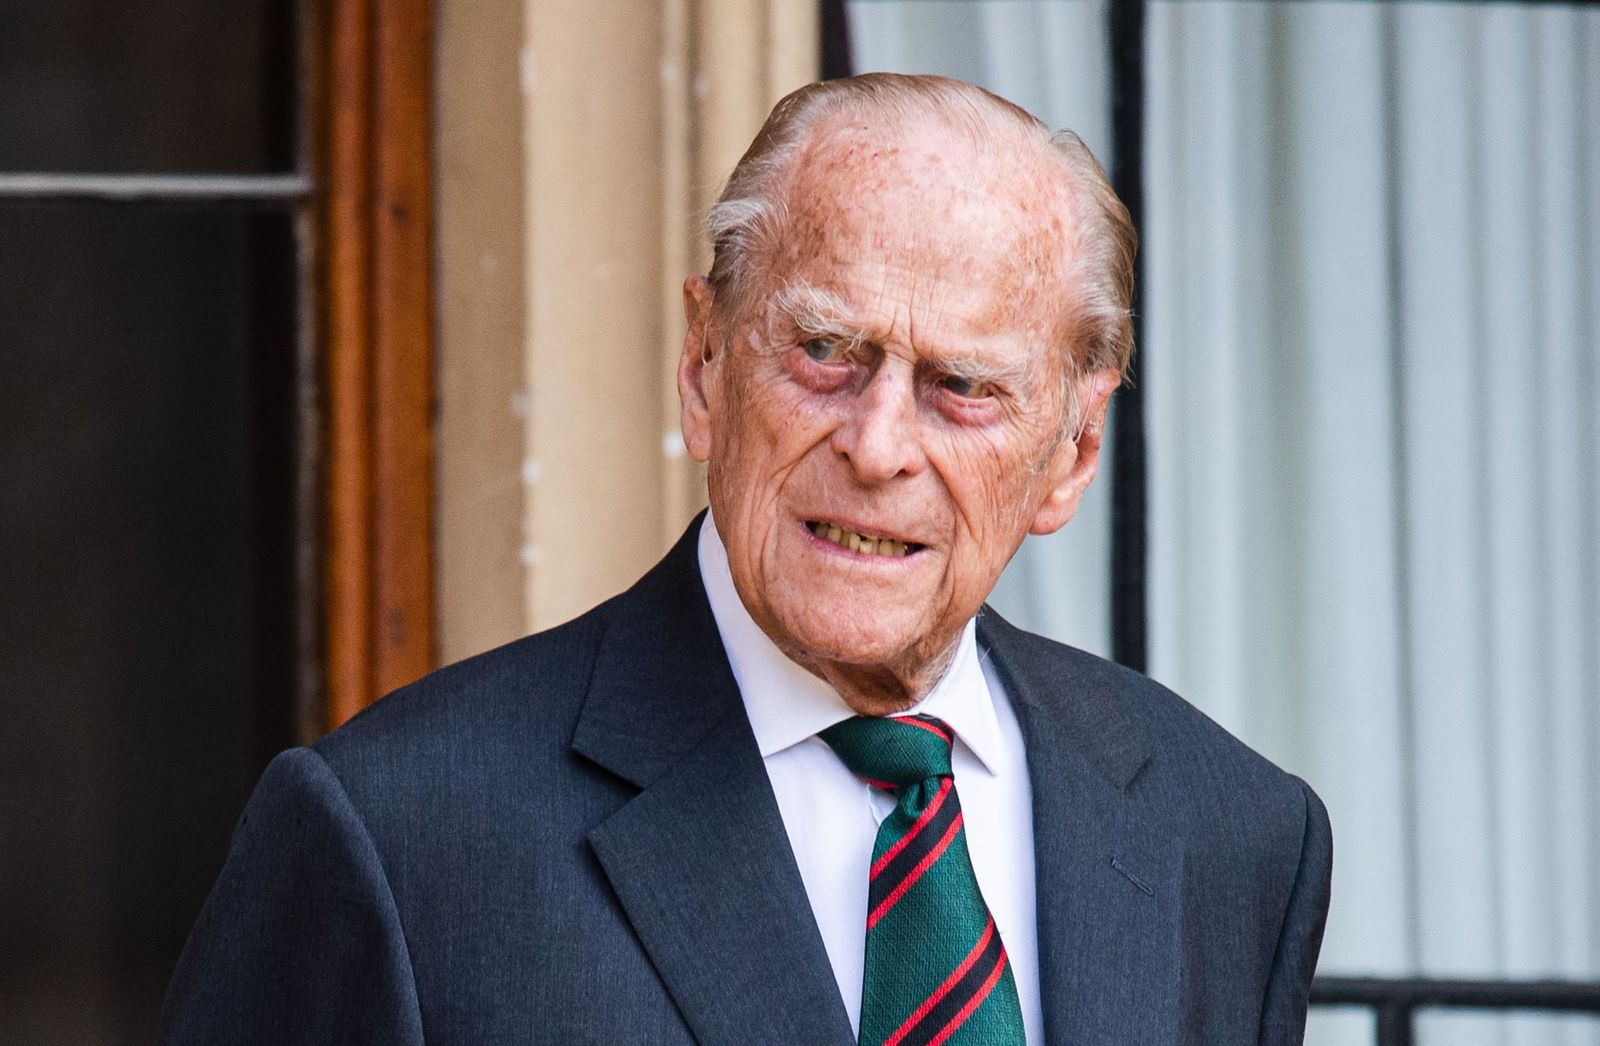 Prince Philip at the transfer of the Colonel-in-Chief of The Rifles at Windsor Castle on July 22, 2020 in Windsor, England. | Getty Images